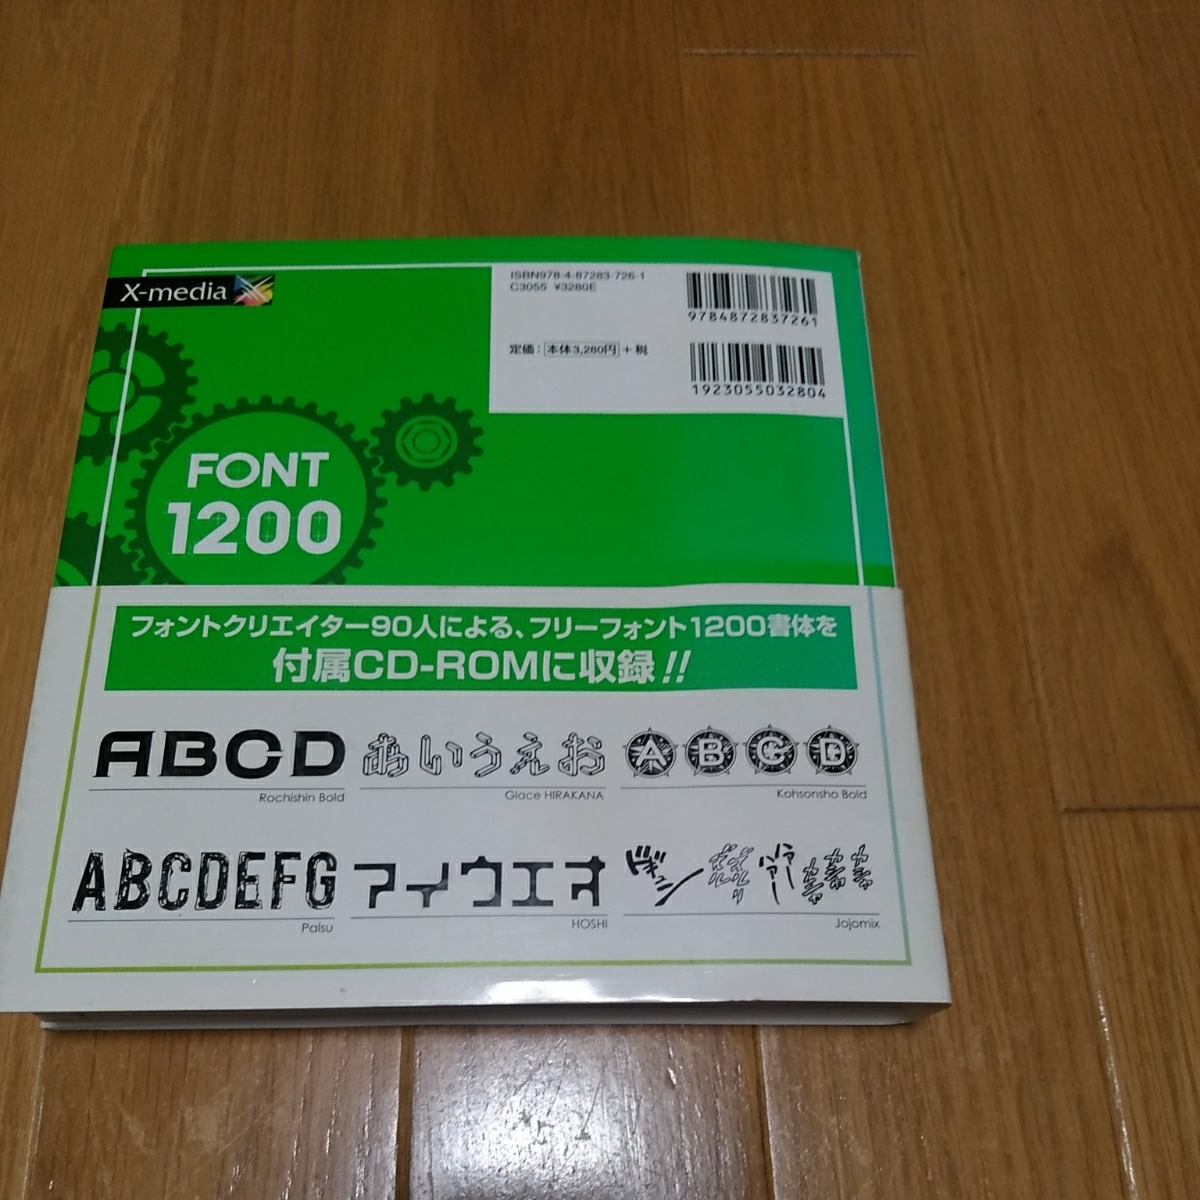 X-media free font Ⅱ carefuly selected 1200